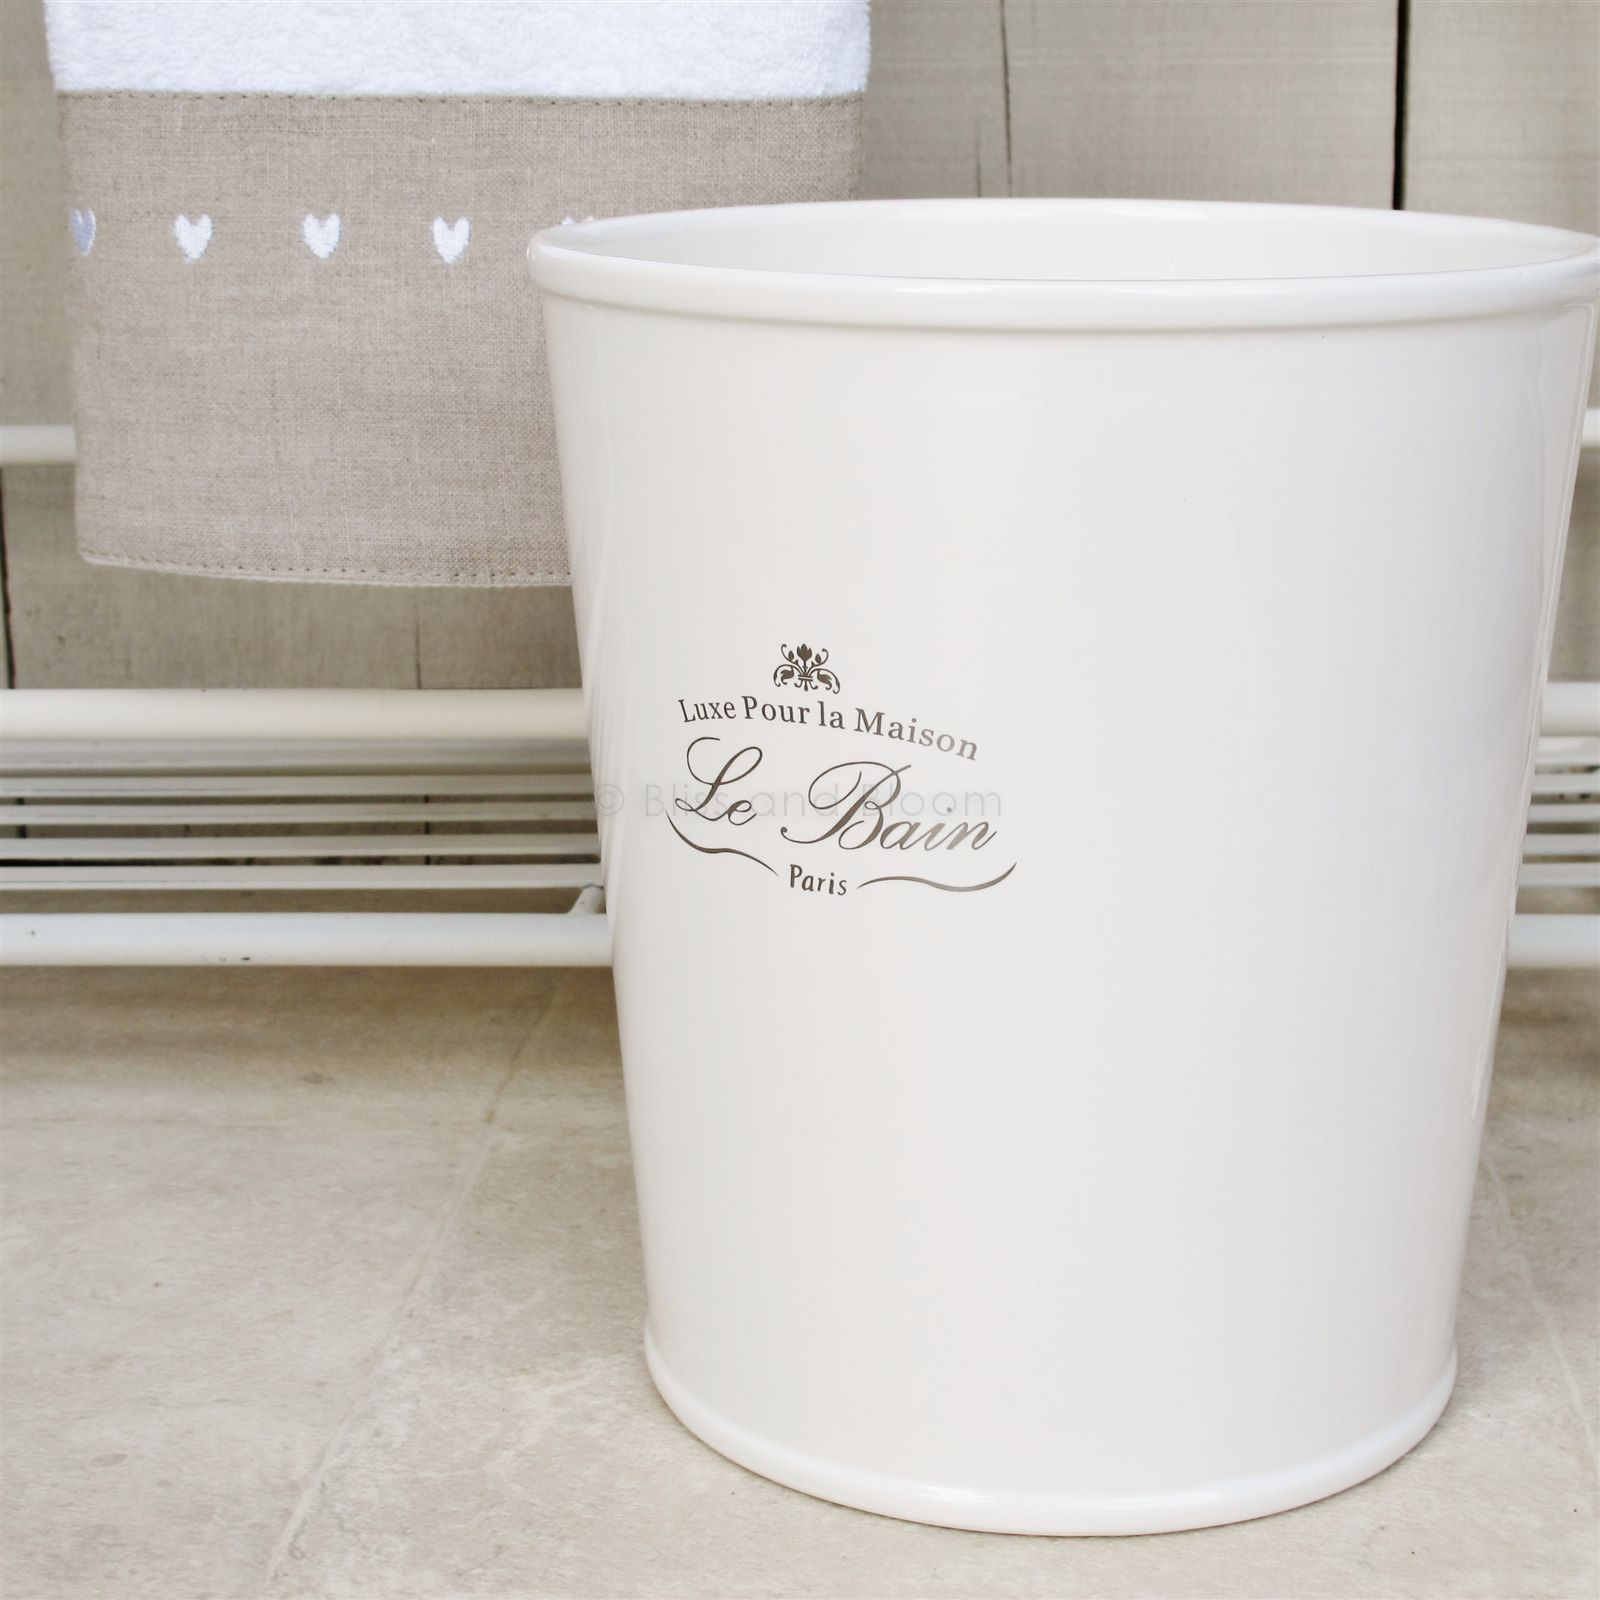 Le bain ceramic bin bliss and bloom ltd for Ceramic bathroom bin